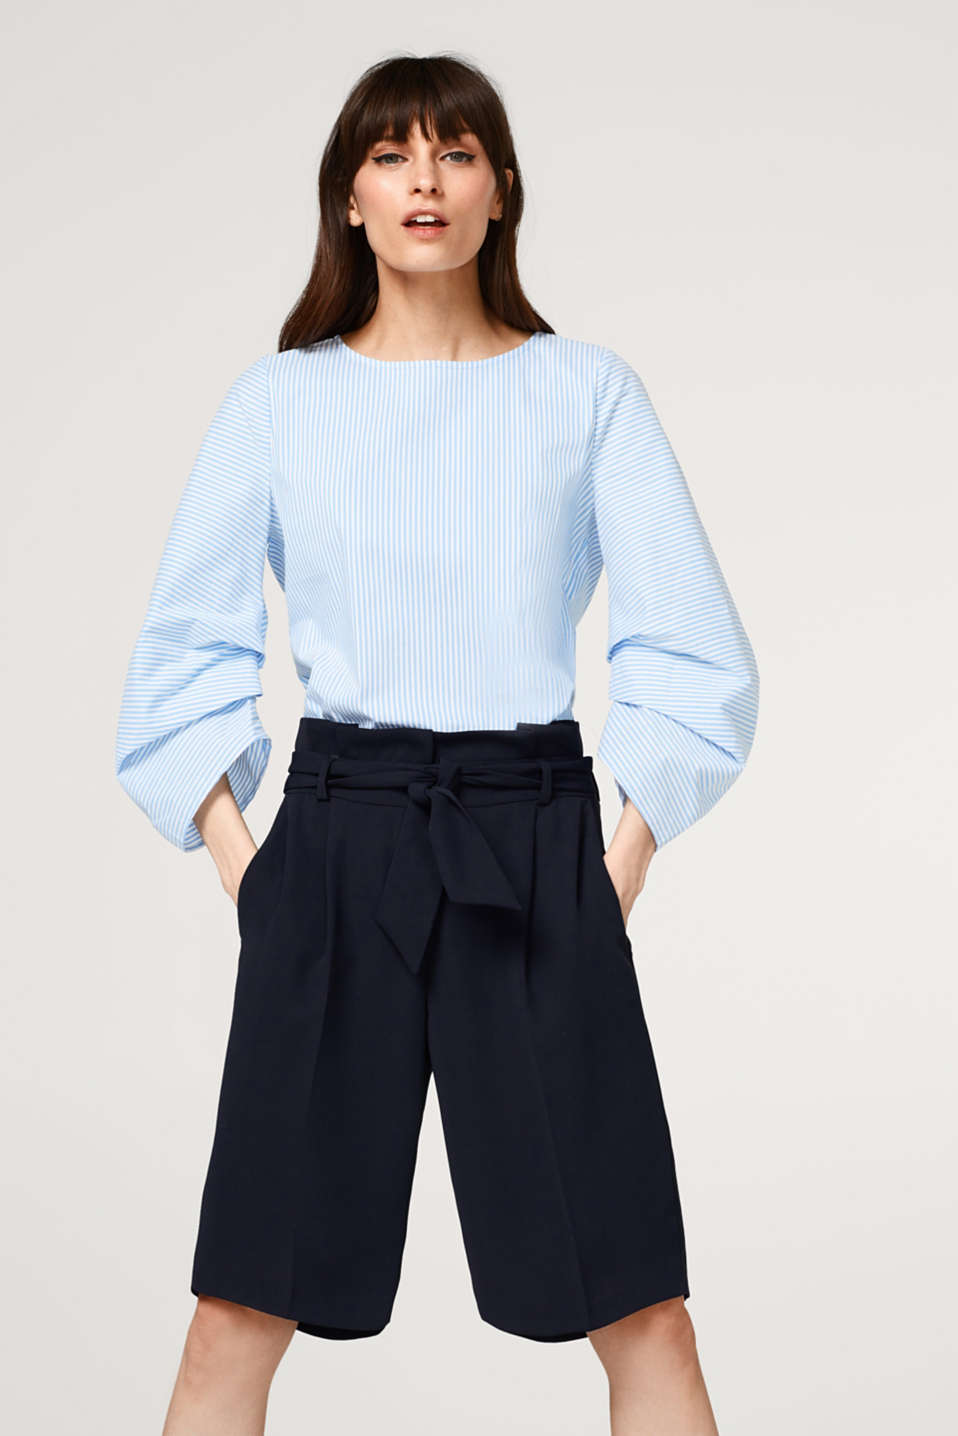 Esprit - Stretchy blouse with pleated sleeves